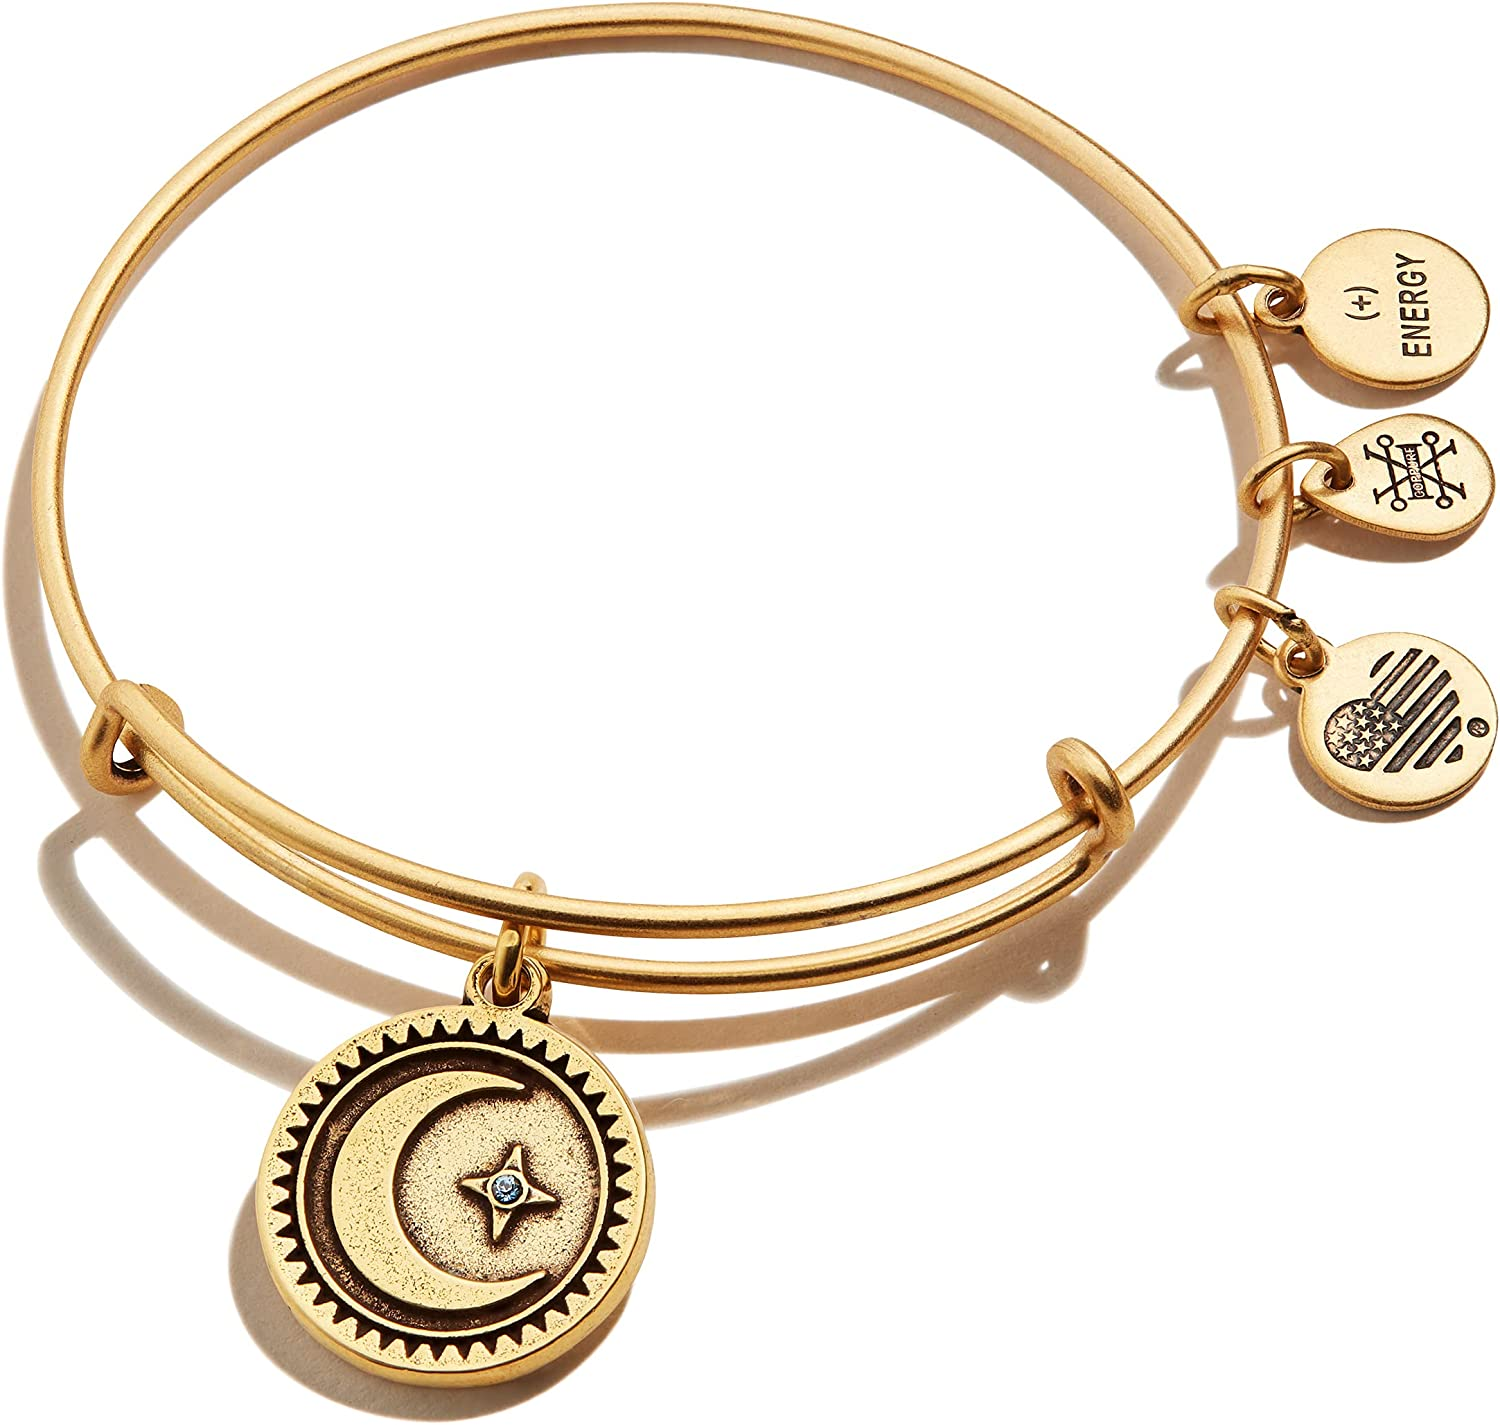 Alex and Ani Path of Symbols Expandable Bangle for Women, Crescent Moon Charm, Rafaelian Gold Finish, 2 to 3.5 in : Clothing, Shoes & Jewelry